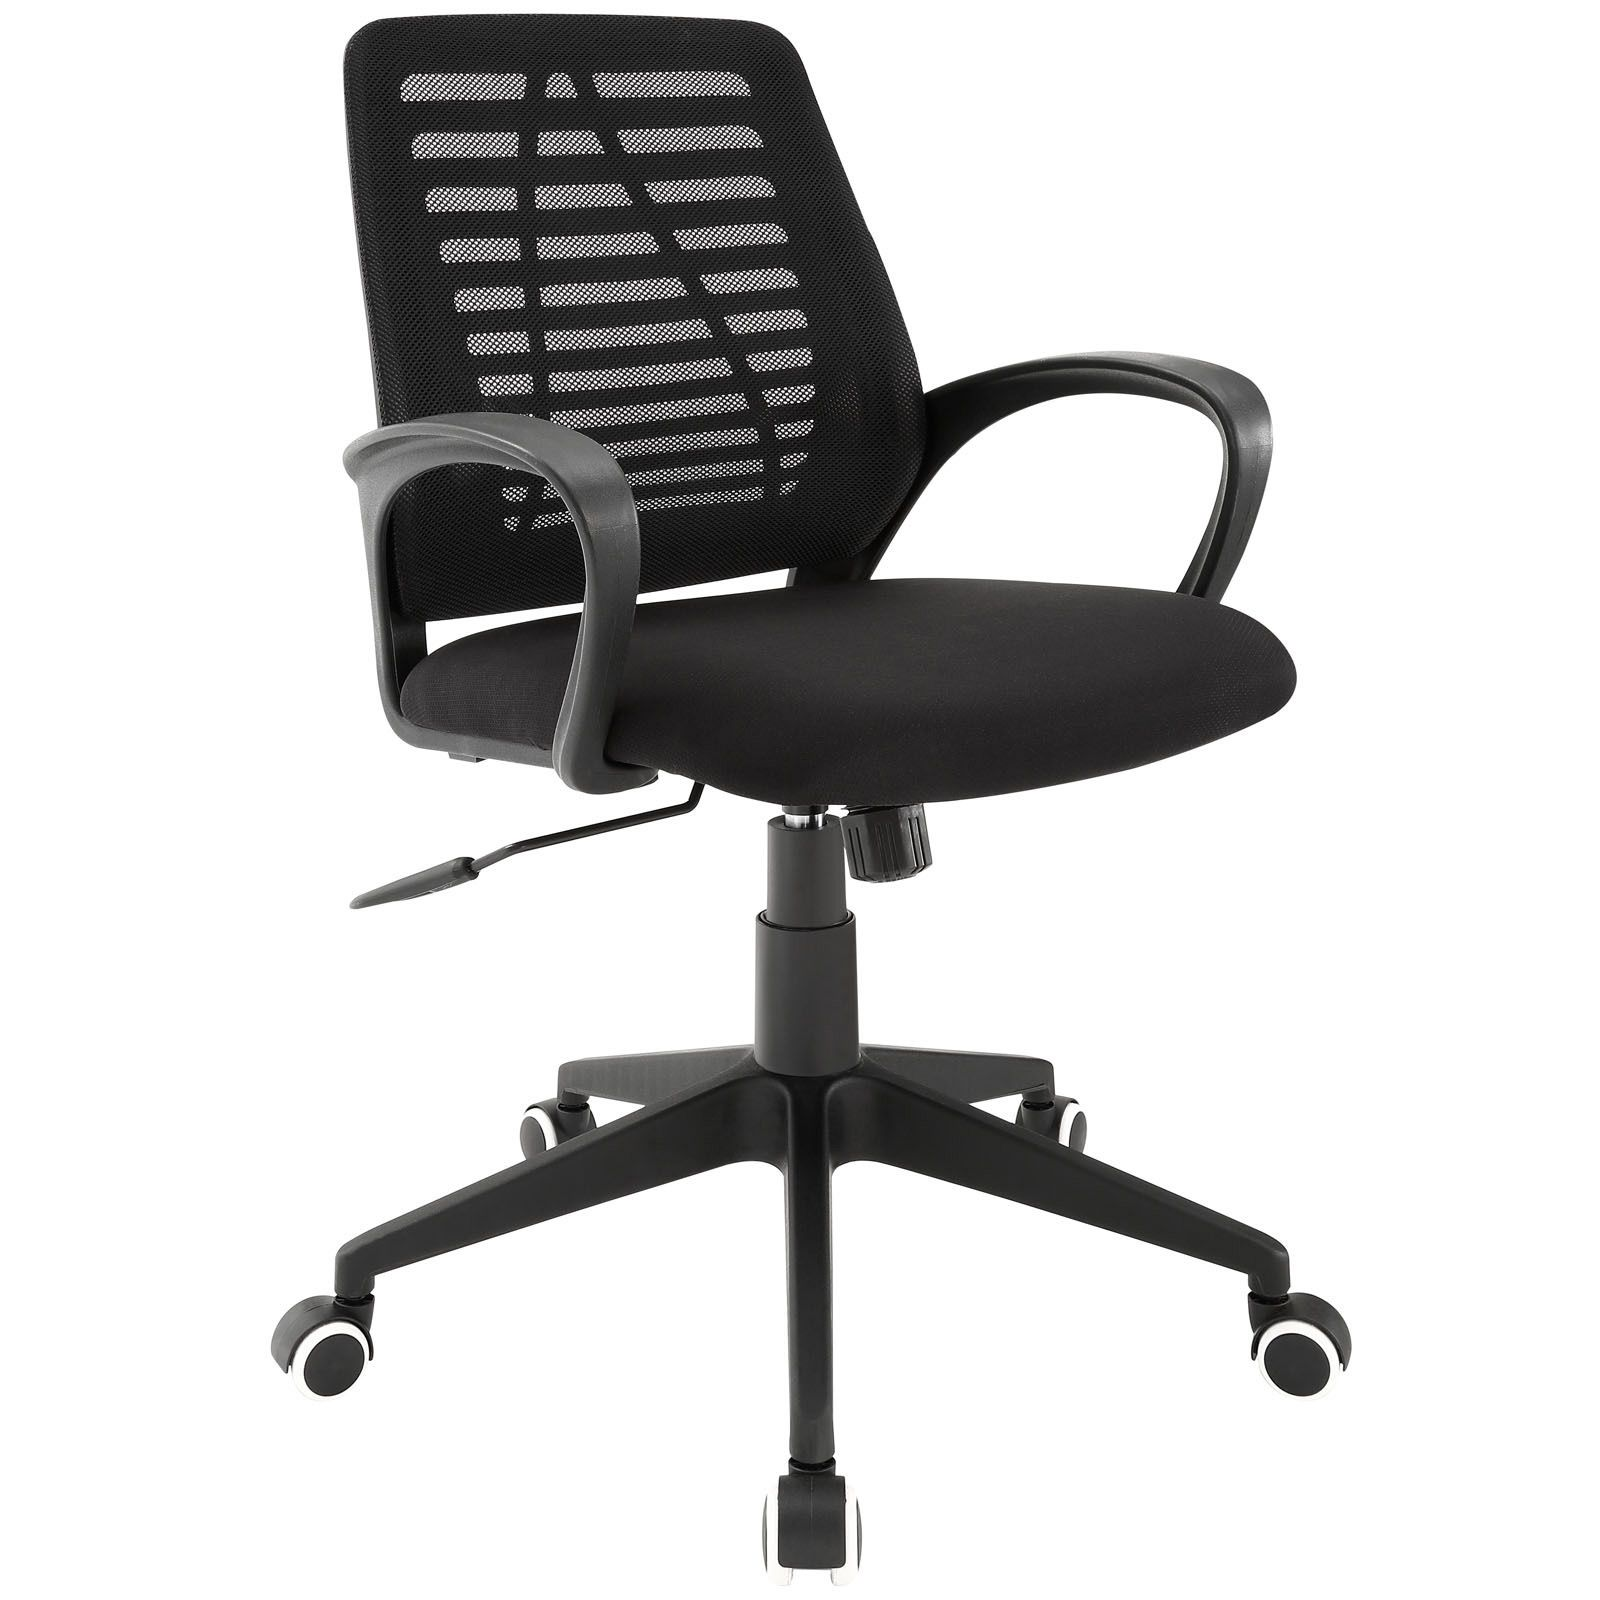 Newark EEI 1250 Rethink your workday in Newark discount chairs A